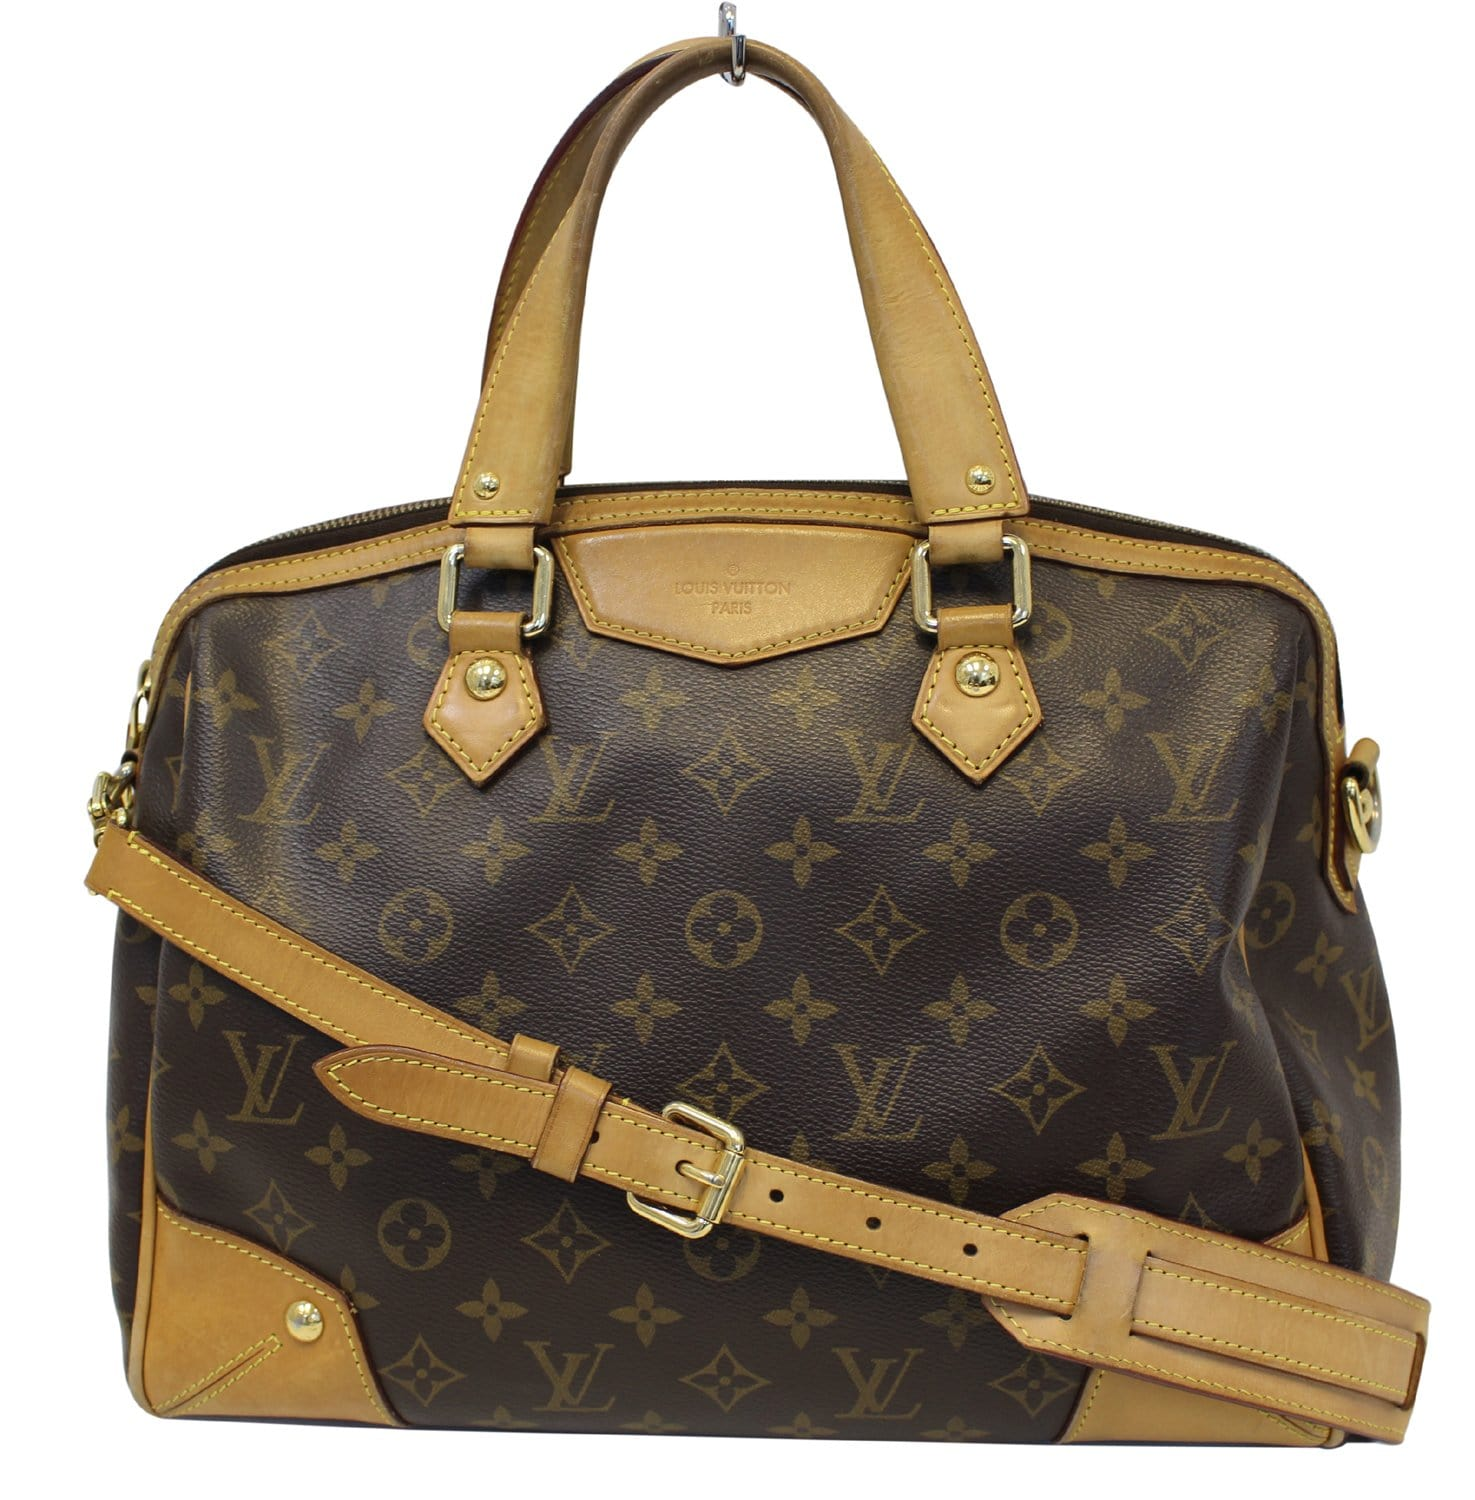 805dda93f181 LOUIS VUITTON Monogram Canvas Retiro PM Brown Shoulder Bag